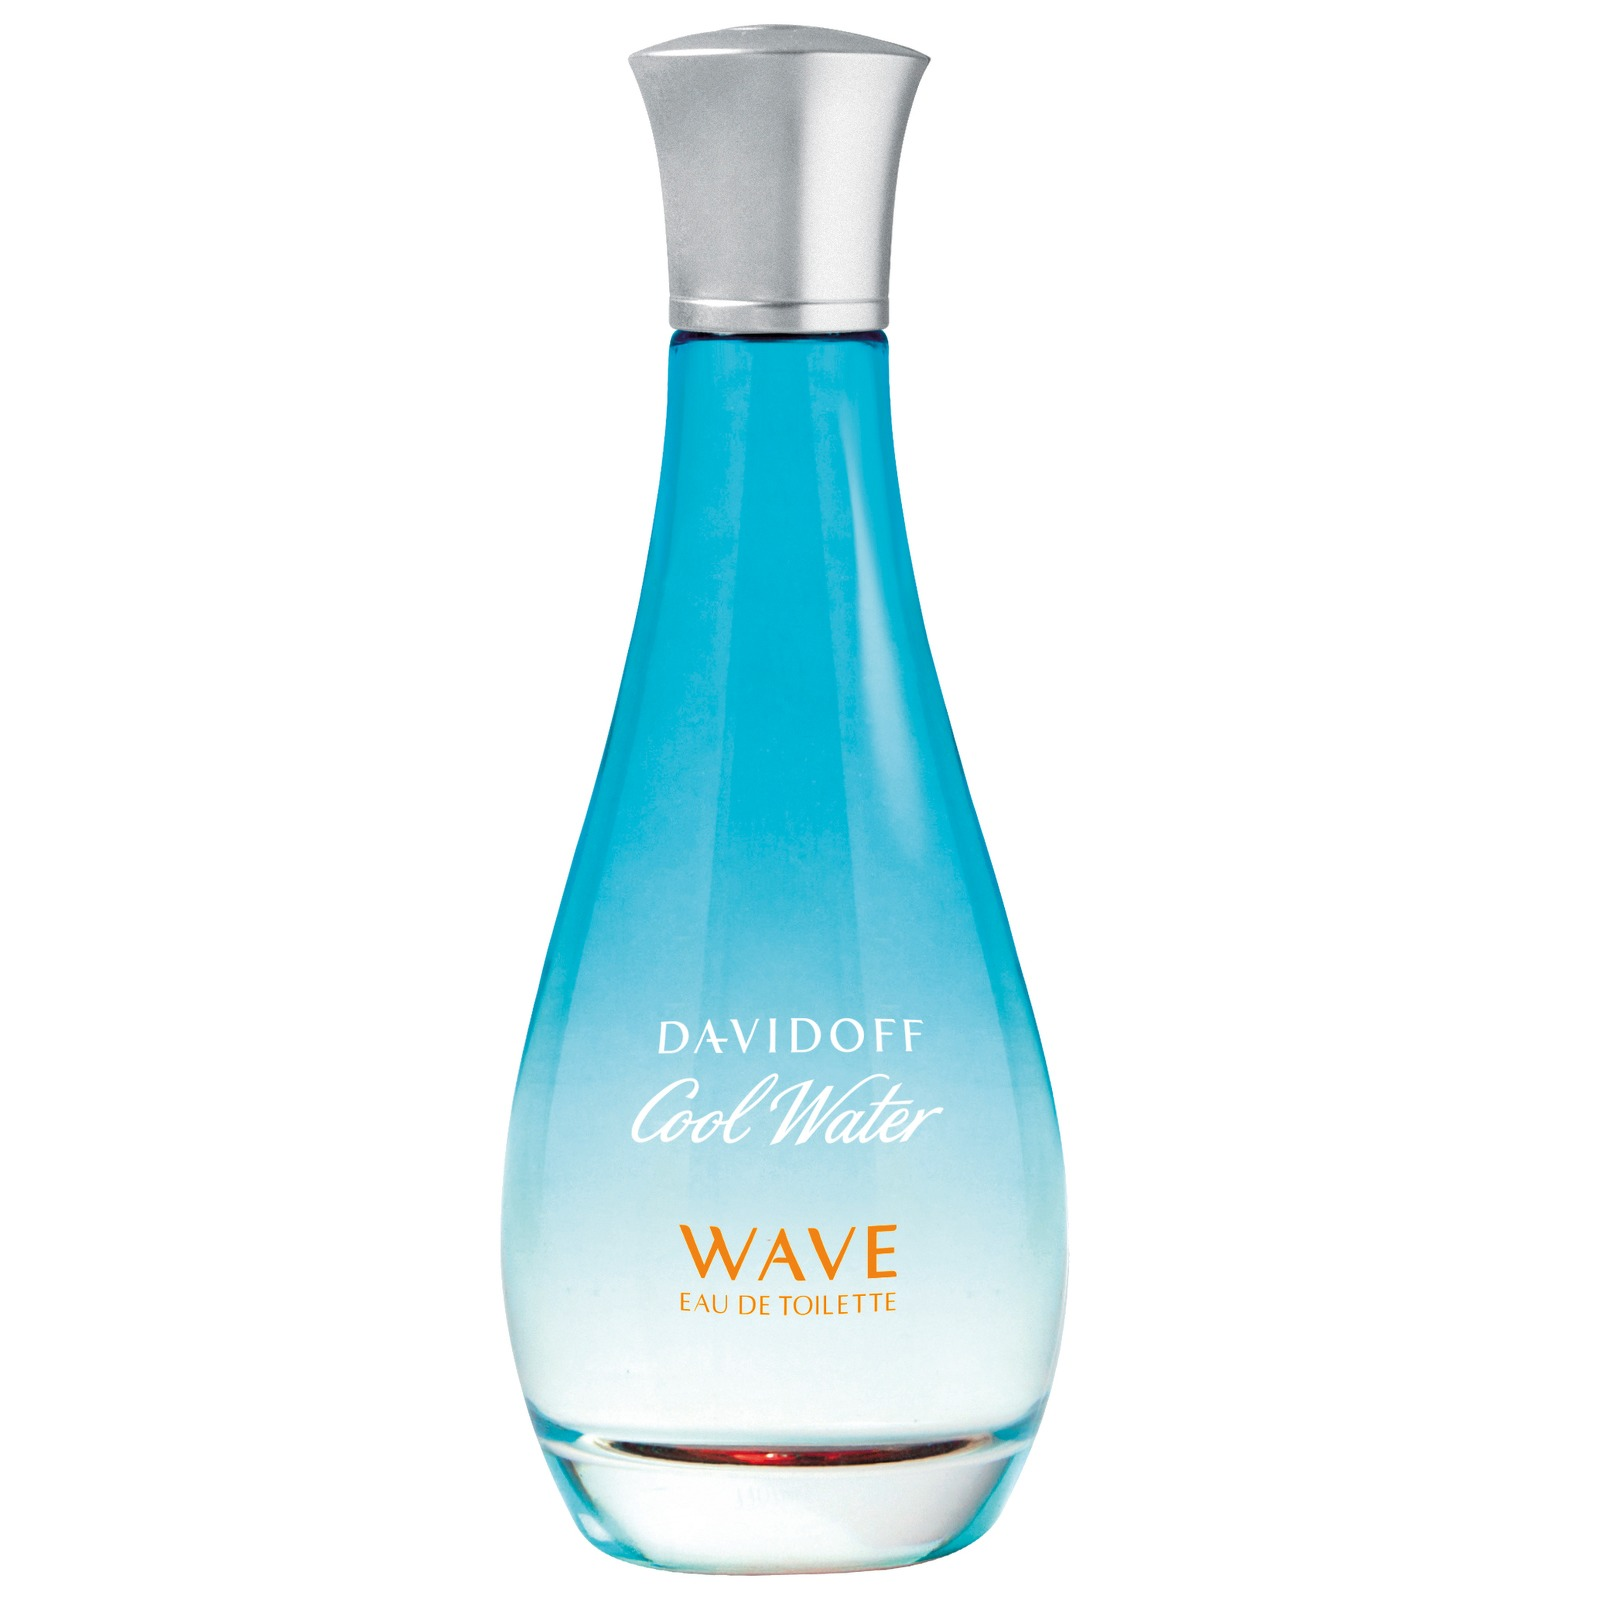 Davidoff Cool Water Wave Woman Eau de Toilette Spray 100ml